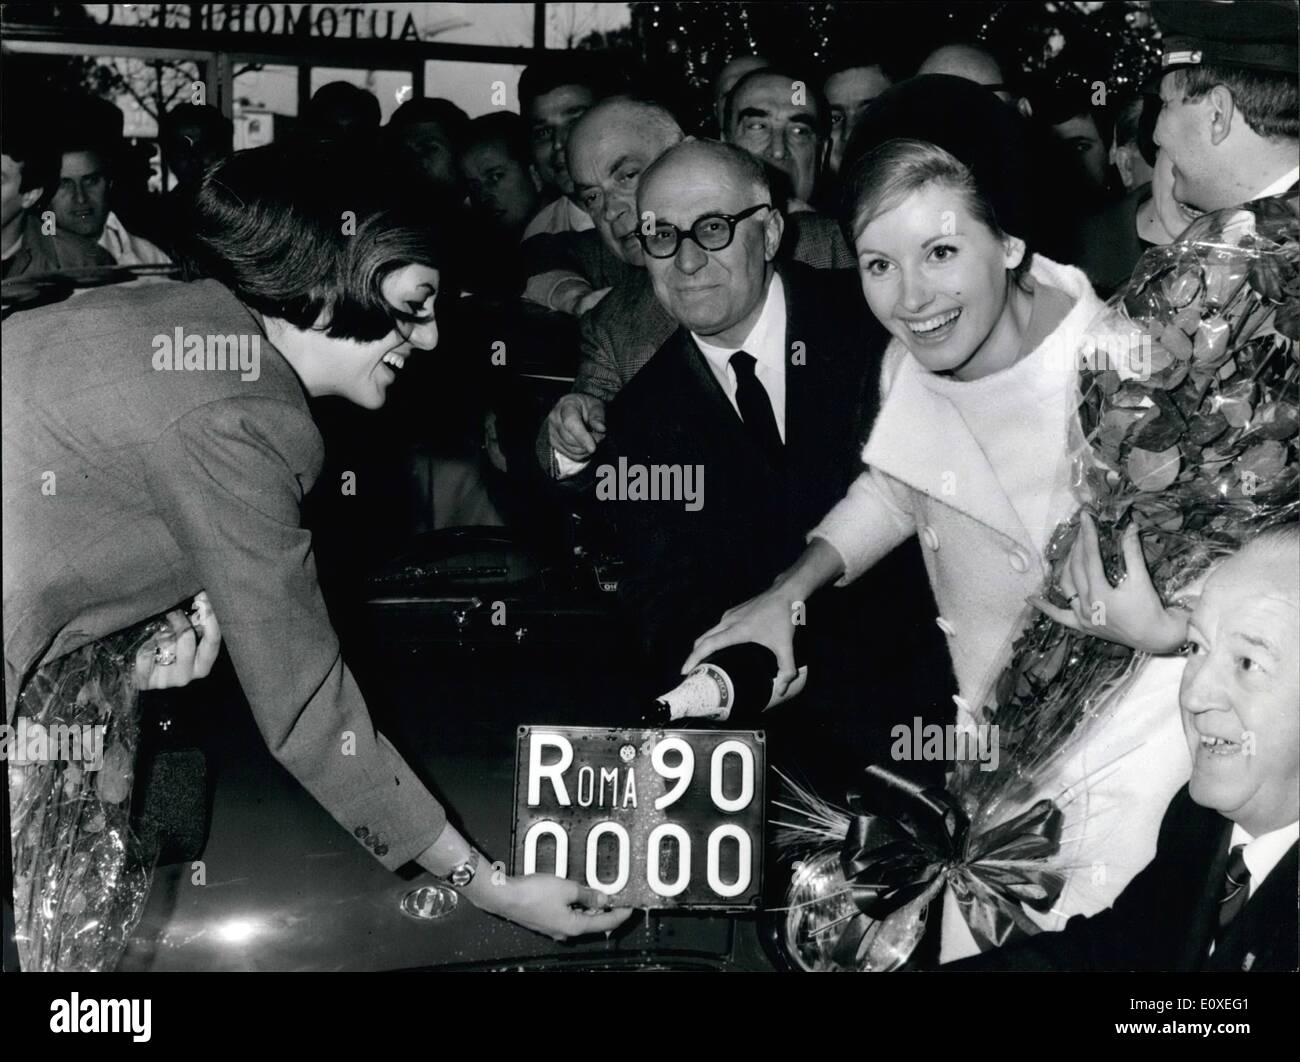 Jul. 07, 1966 - The number plate Roma 900.000 has been assigned at a car ''Innocenti Mini Minor 850'' bye the beautiful blonde TV speaker Gabriella Farinon, today at the Automobile Club headquarter. The kind of plate is in Italy progressively. The number plate no. 1 was assigned in Rome on 1927. Just be precised that every Italian, province has the progressive numeration and the first city that has reached the n. 1.000.000. was Milan, Northern Italy. OPS = TV speaker Gabriella Farinon ''wished'' with a bottle of champagne, the new number plate Roma 900.000. - Stock Image